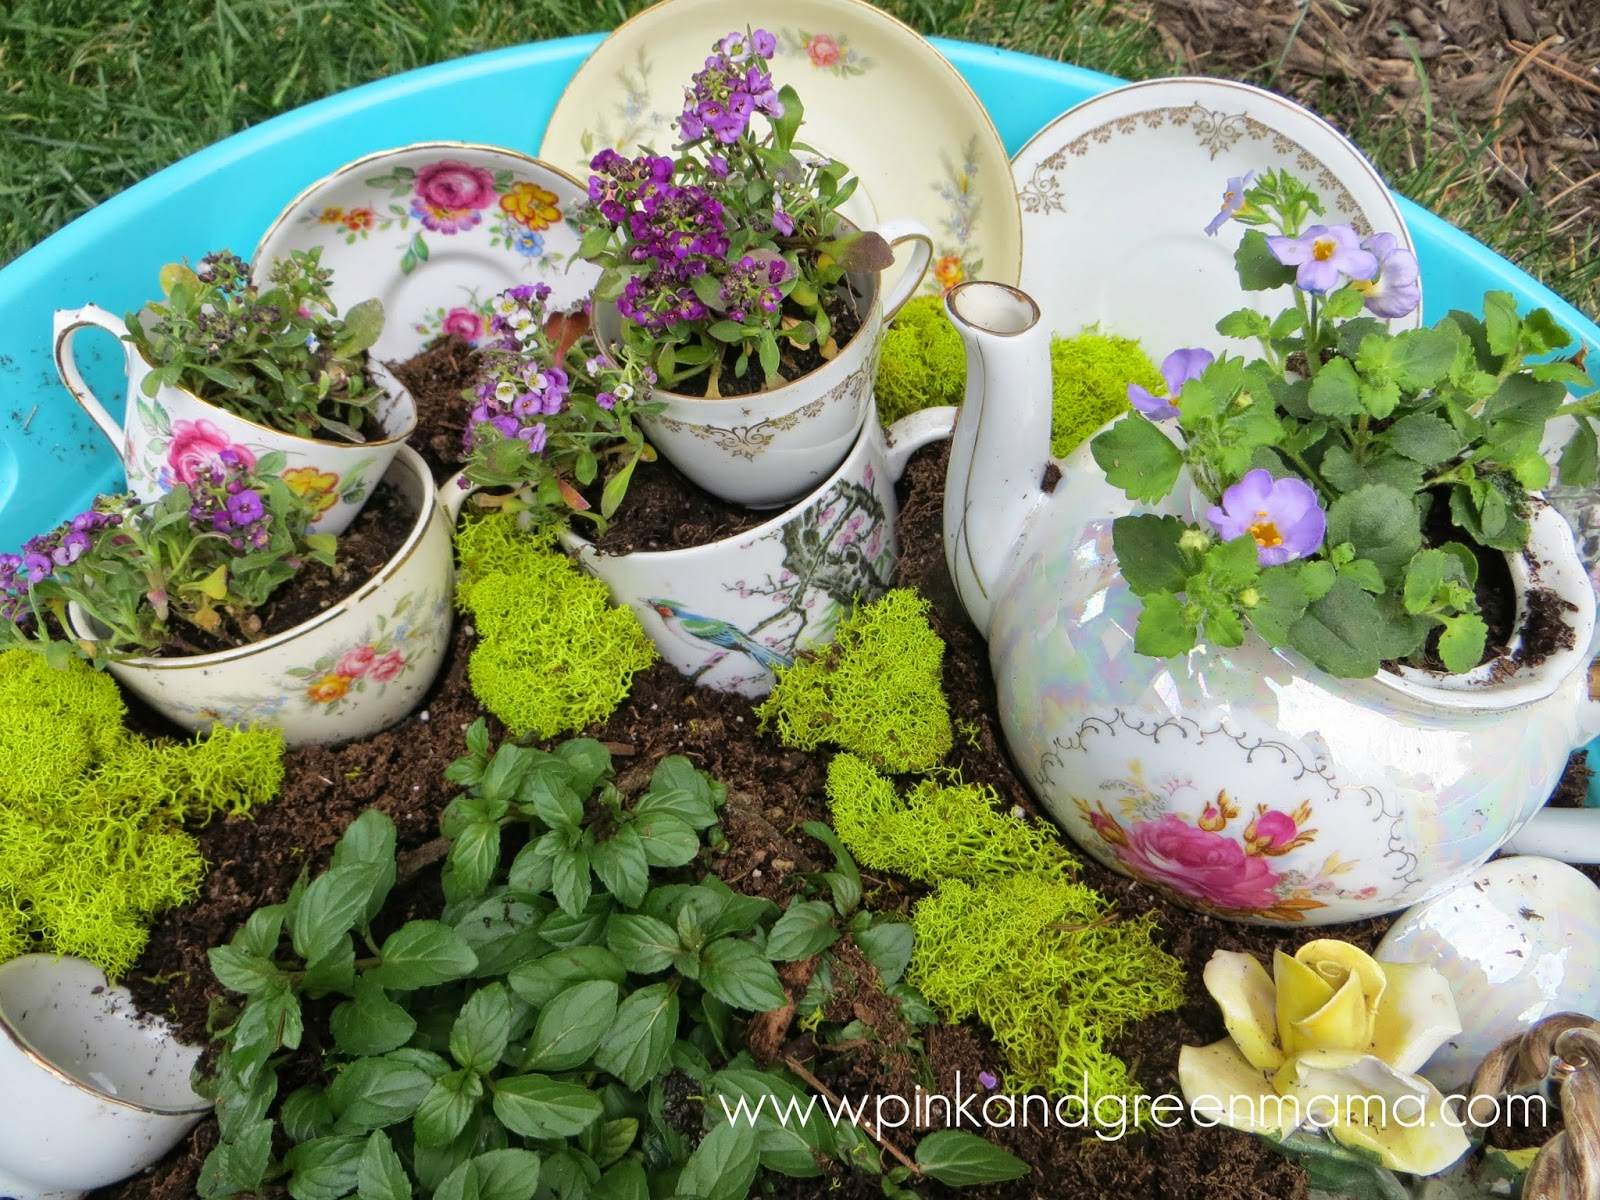 Pink and Green Mama Childs Dish Garden Inspired by